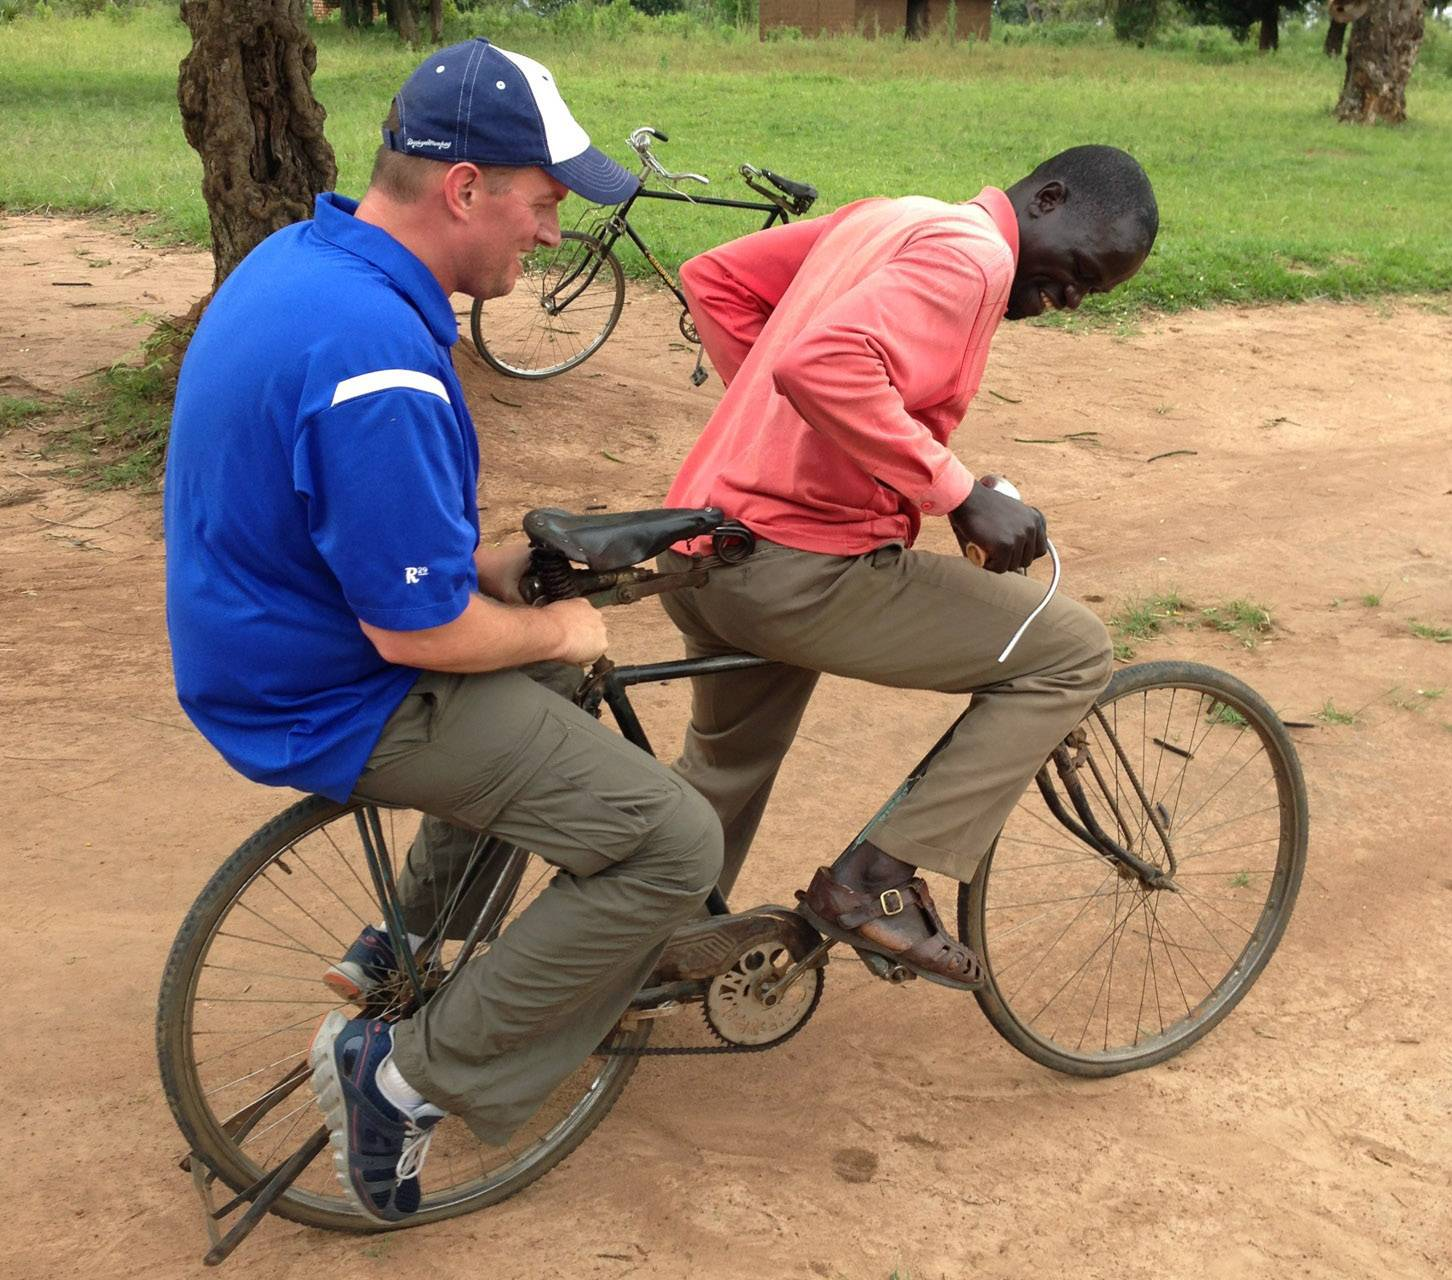 Justin Ahrens of Batavia, left, gets a ride from a local during a trip to Africa.